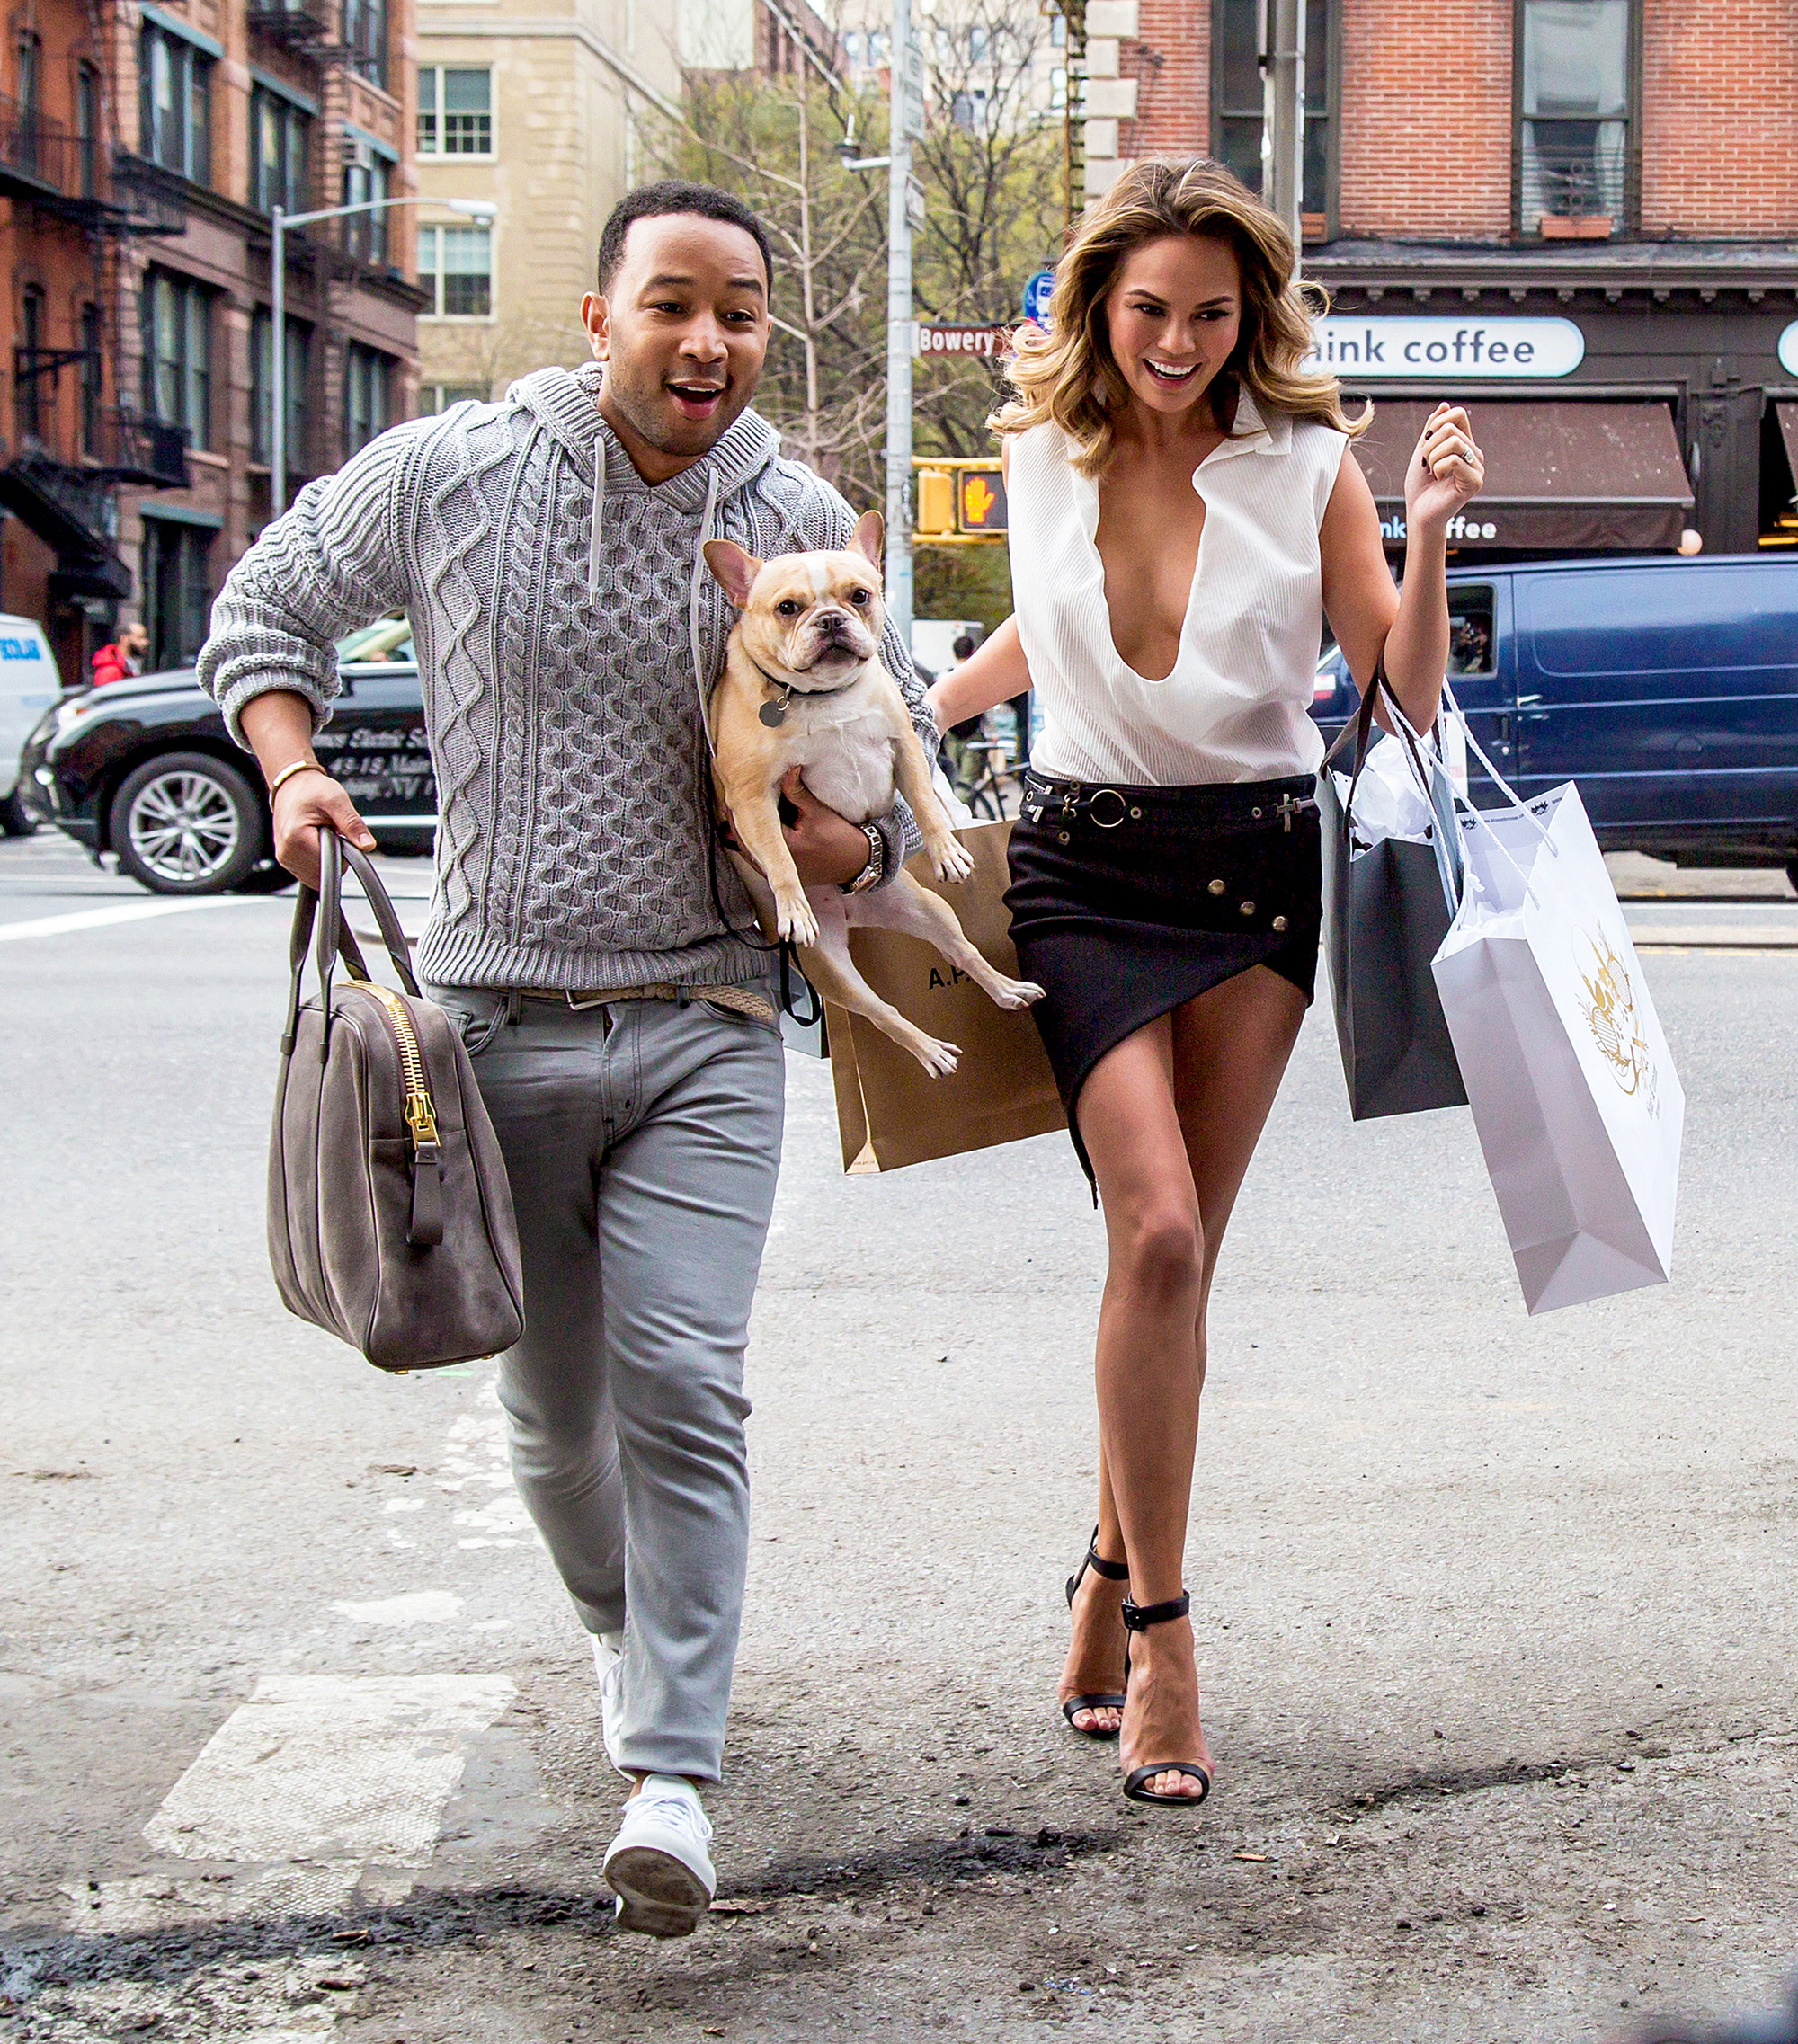 Chrissy Teigens Guide To Walking Your Dog In Style forecasting